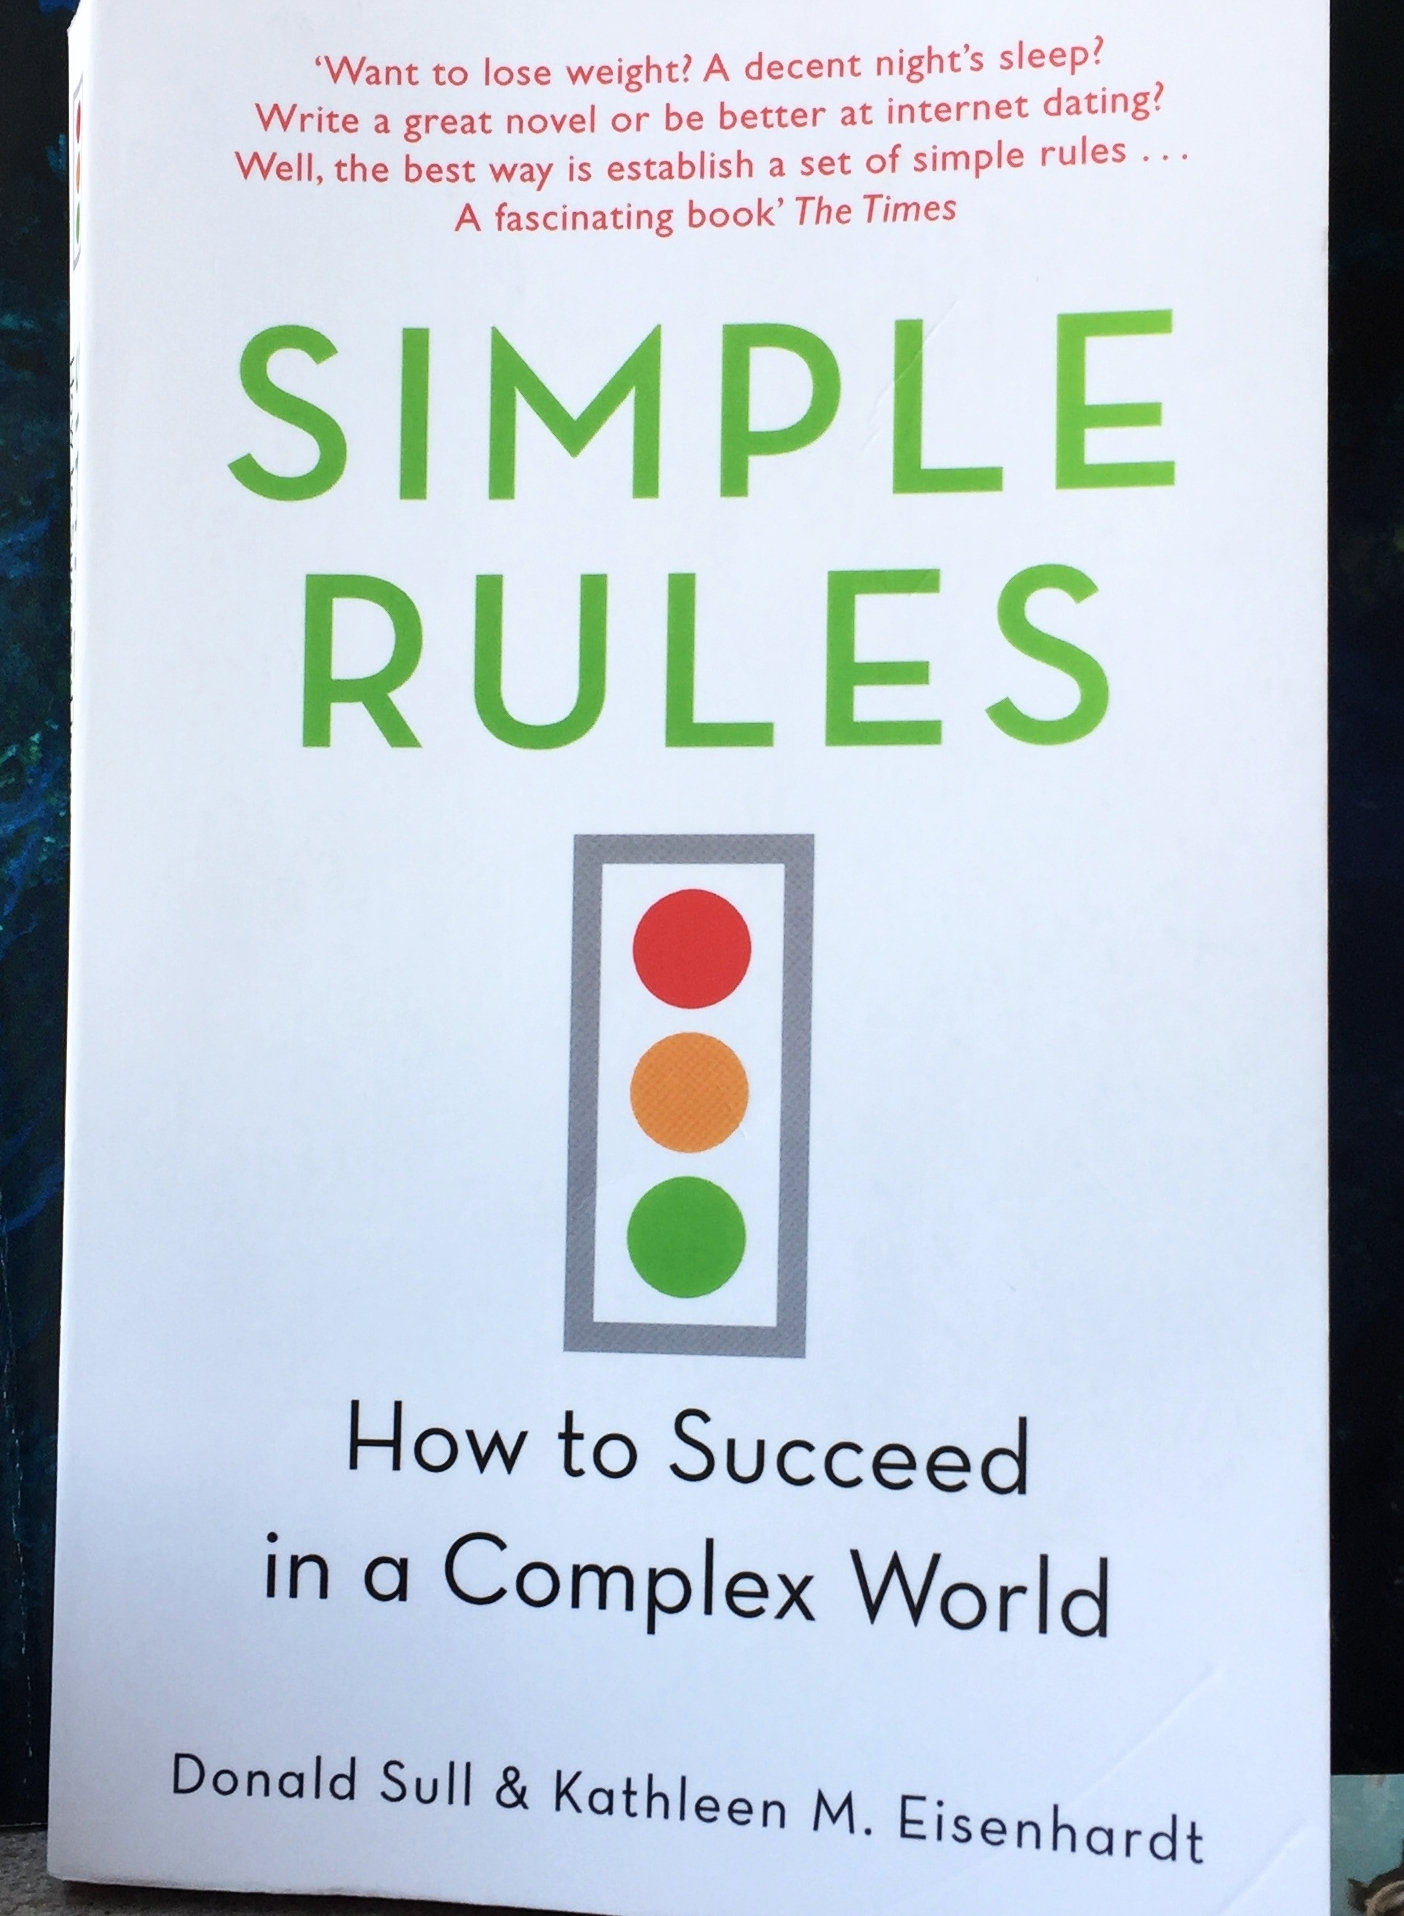 For the increasingly complicated world in which we live, Mick McKenna recommends this little gem of a book to get all of us on the right track!